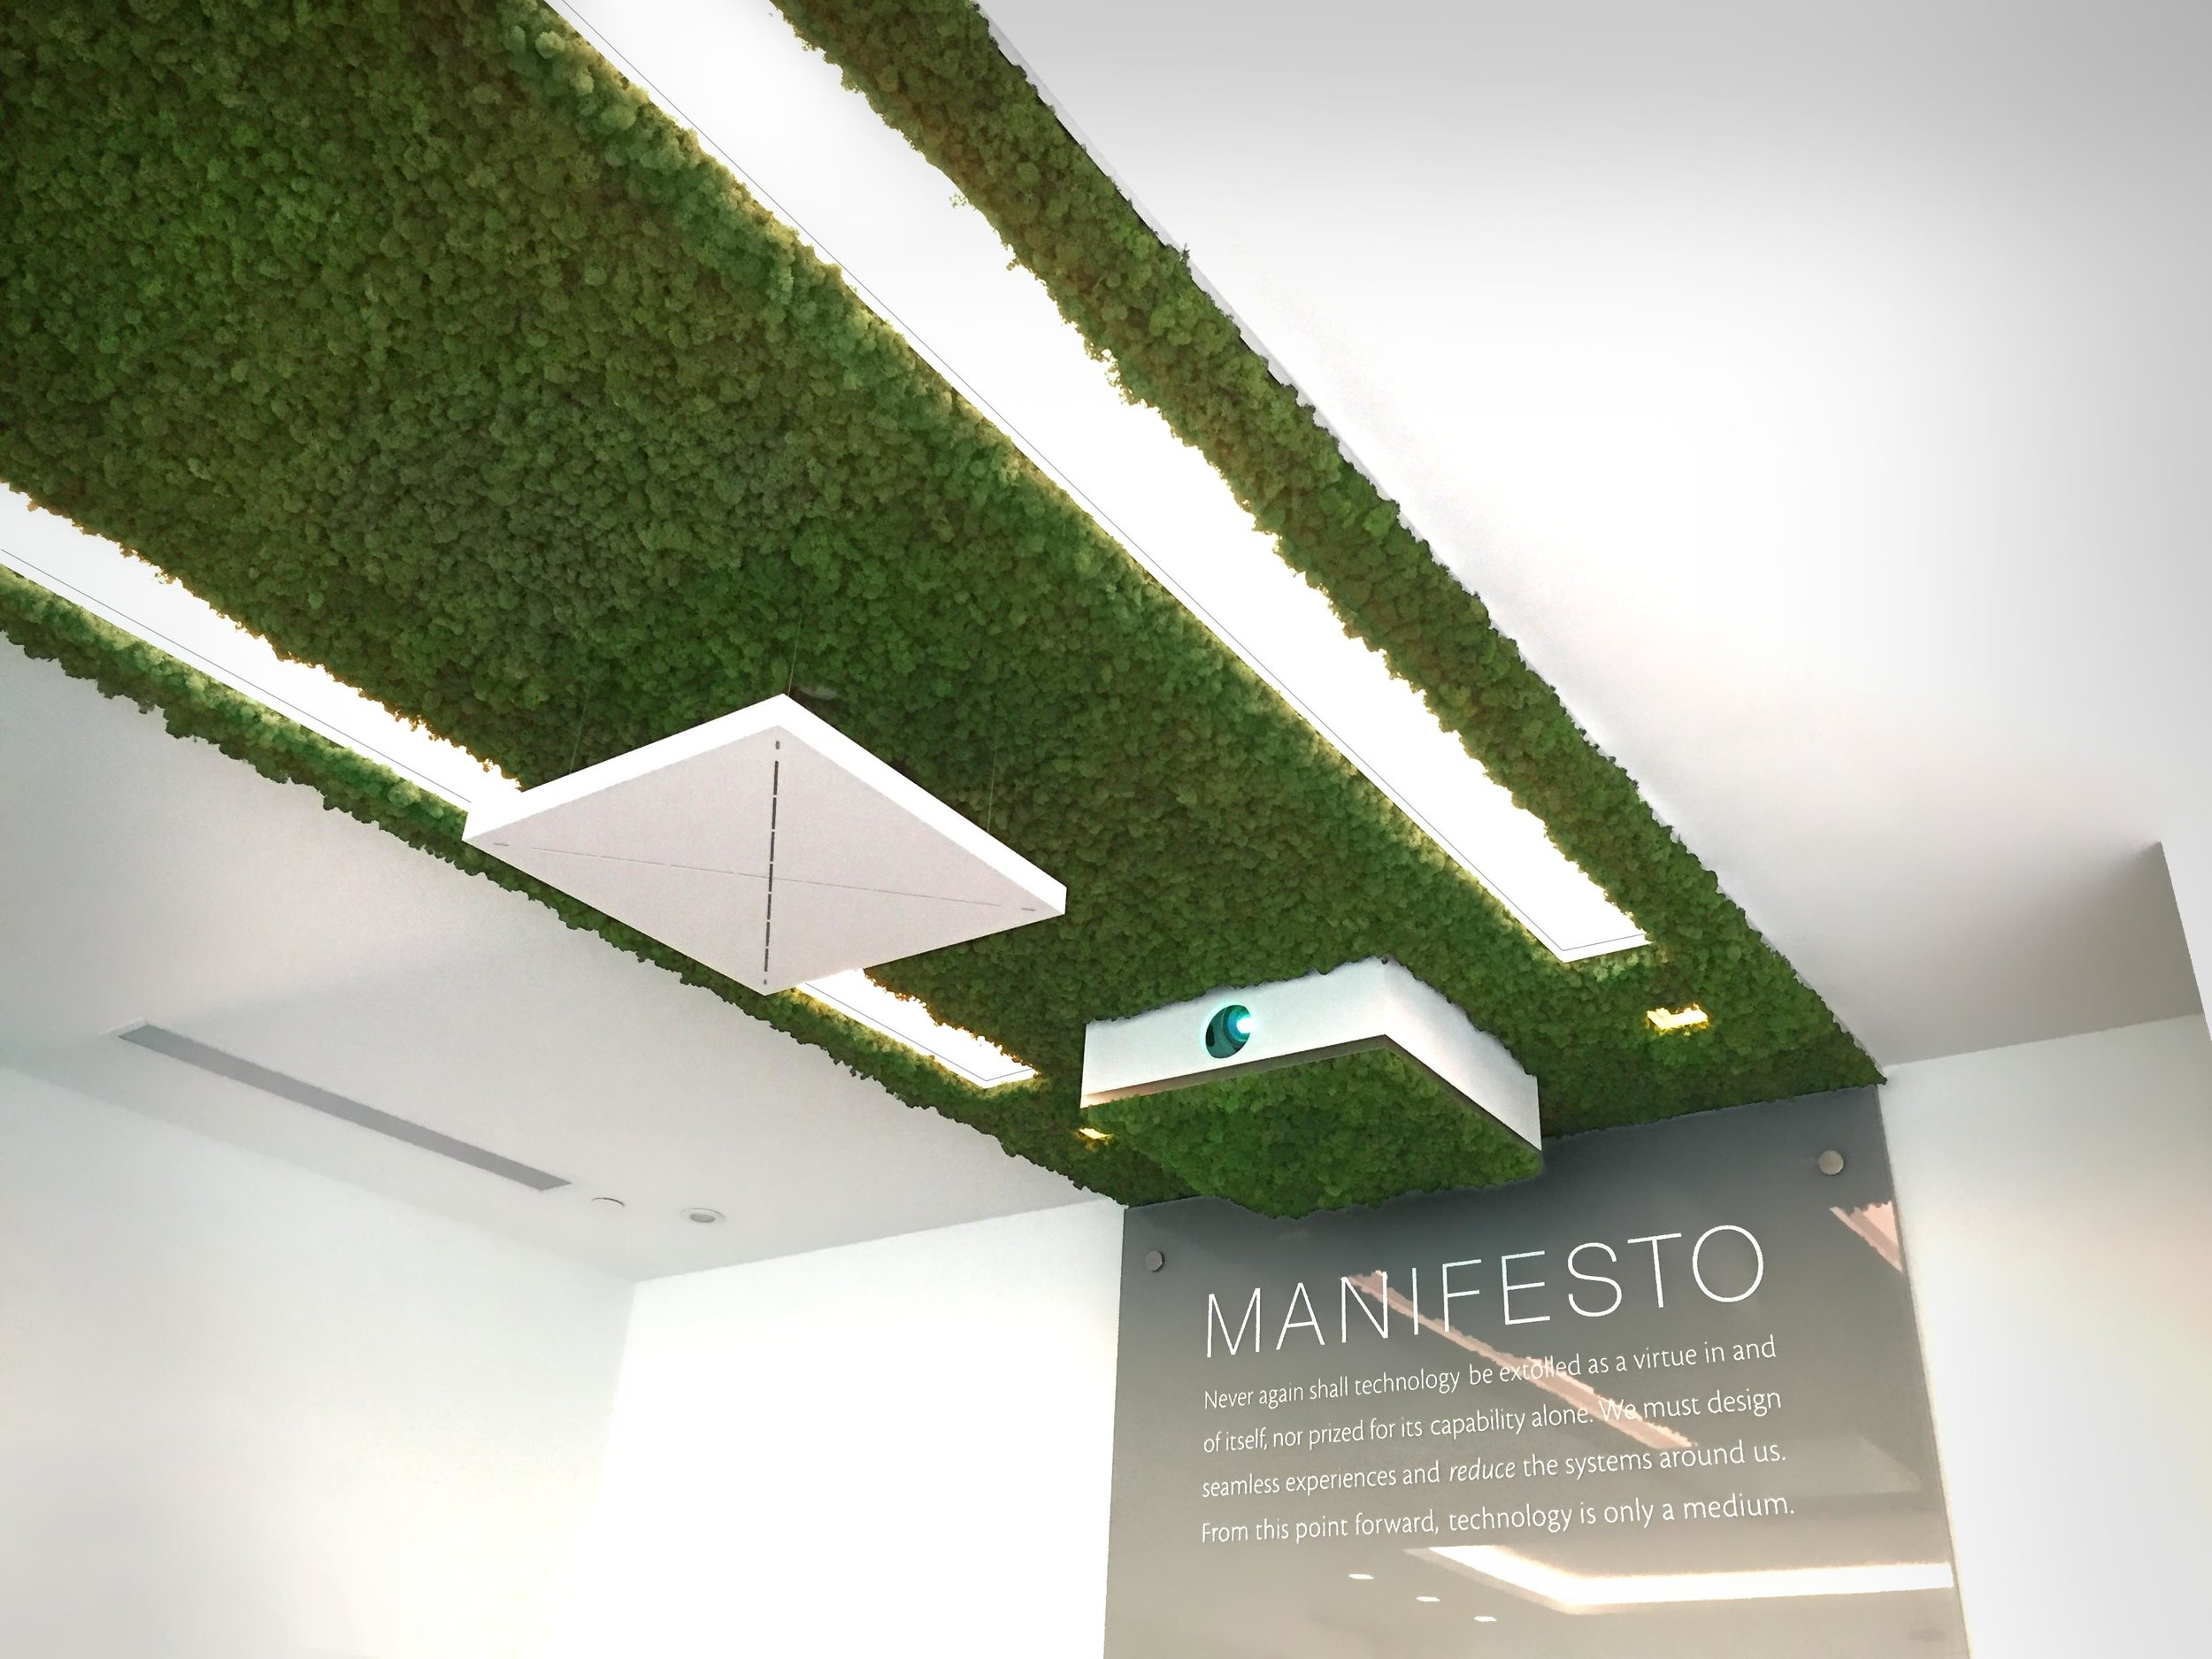 A retracting projector enclosure silently emerges from within the moss to beam an image onto a 360° projection screen on the glass partition in the centre of the room. Acting as both digital signage during the day, or environmental decorative graphics during events, the screen is equally viewable from either side, intriguing guests.